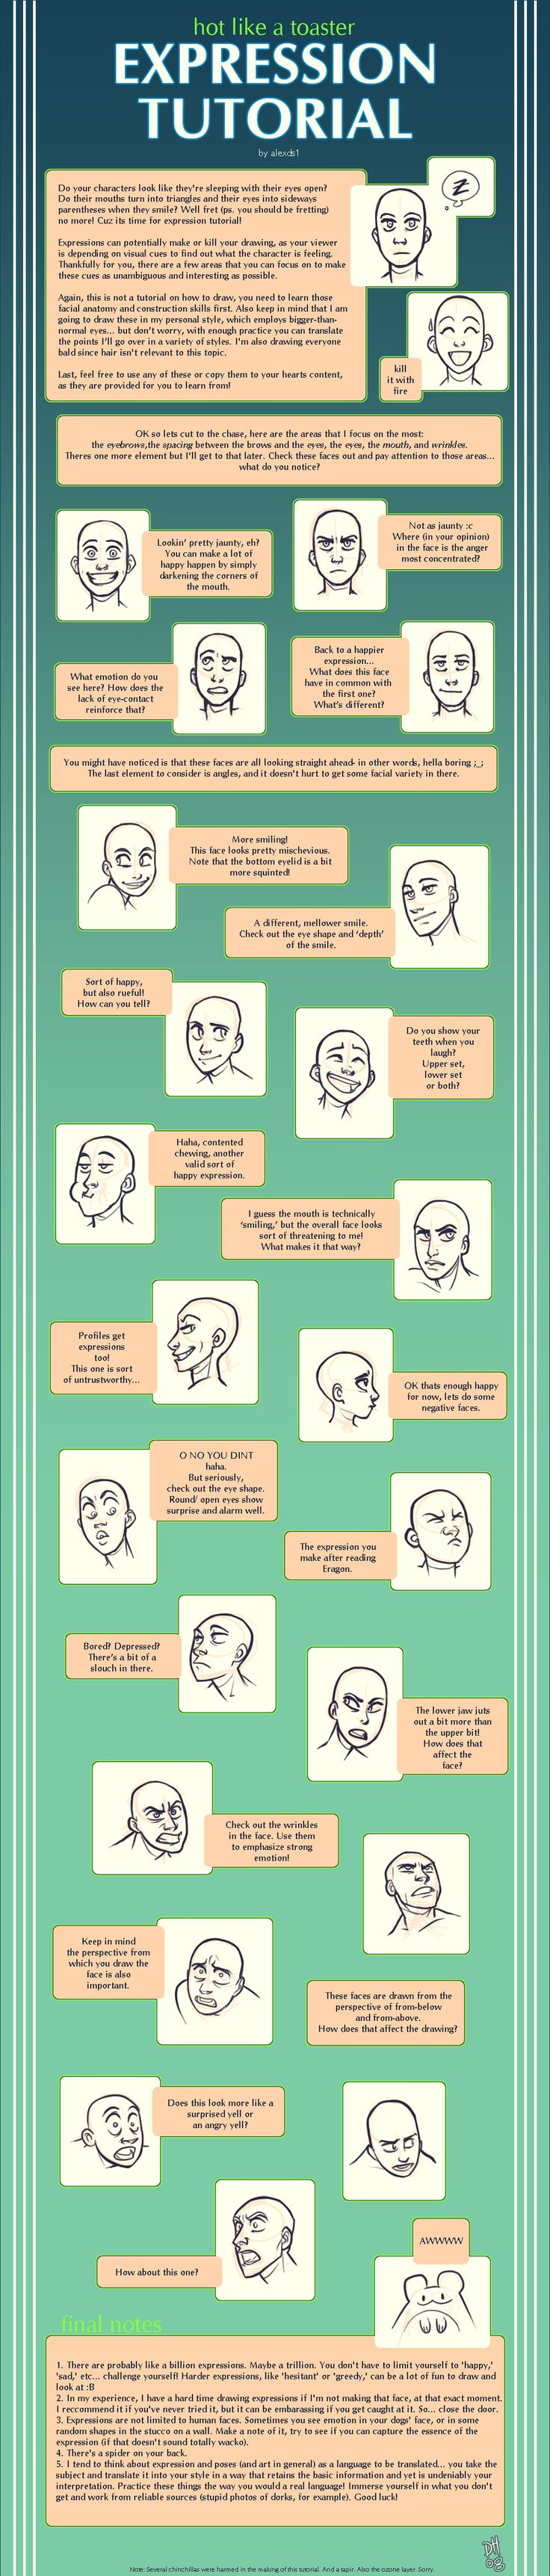 expression tutorial: Faces Expressions, Expressions Tutorials, Drawings Clothing, Drawings Faces, Art Drawings, Drawings Expressions, Facials Expressions Cartoon, Drawings Tutorials, Drawings Facials Expressions